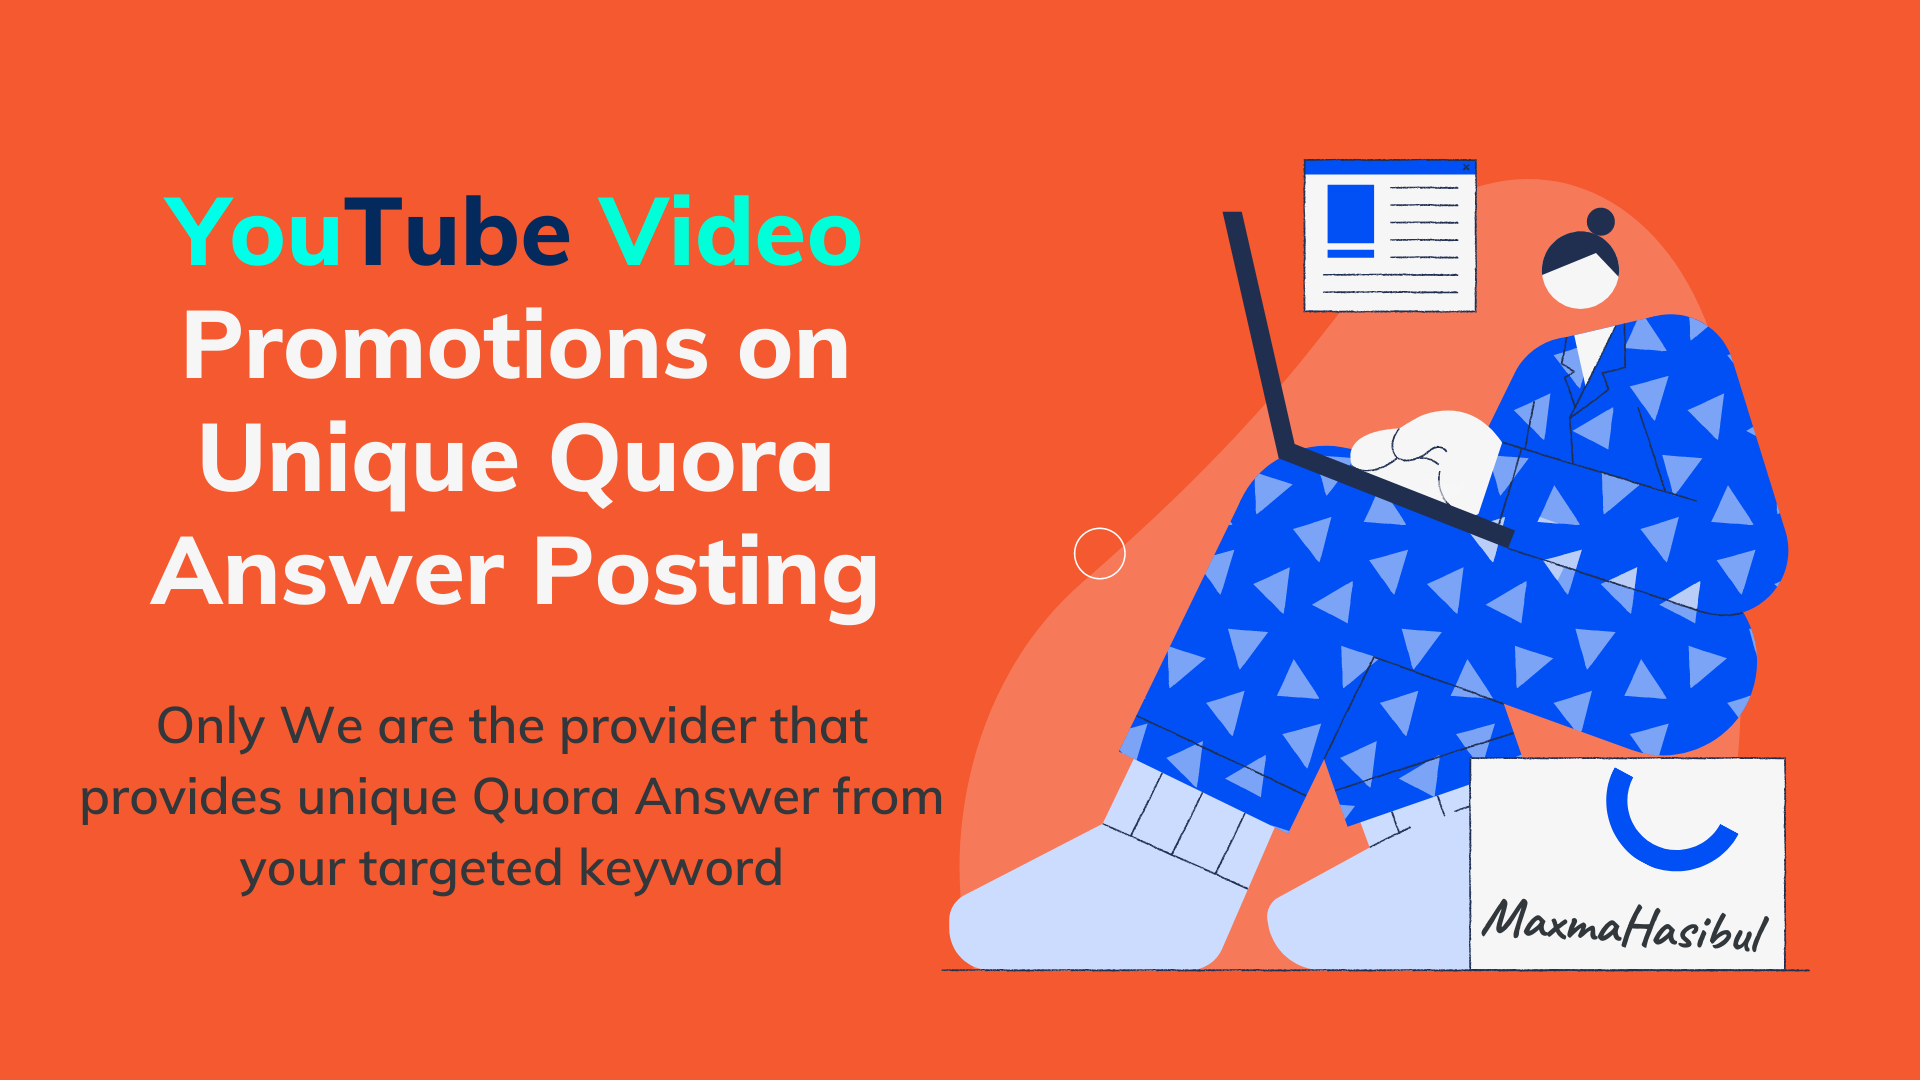 YouTube Video Promotion on Quora Answer Posting with real audience